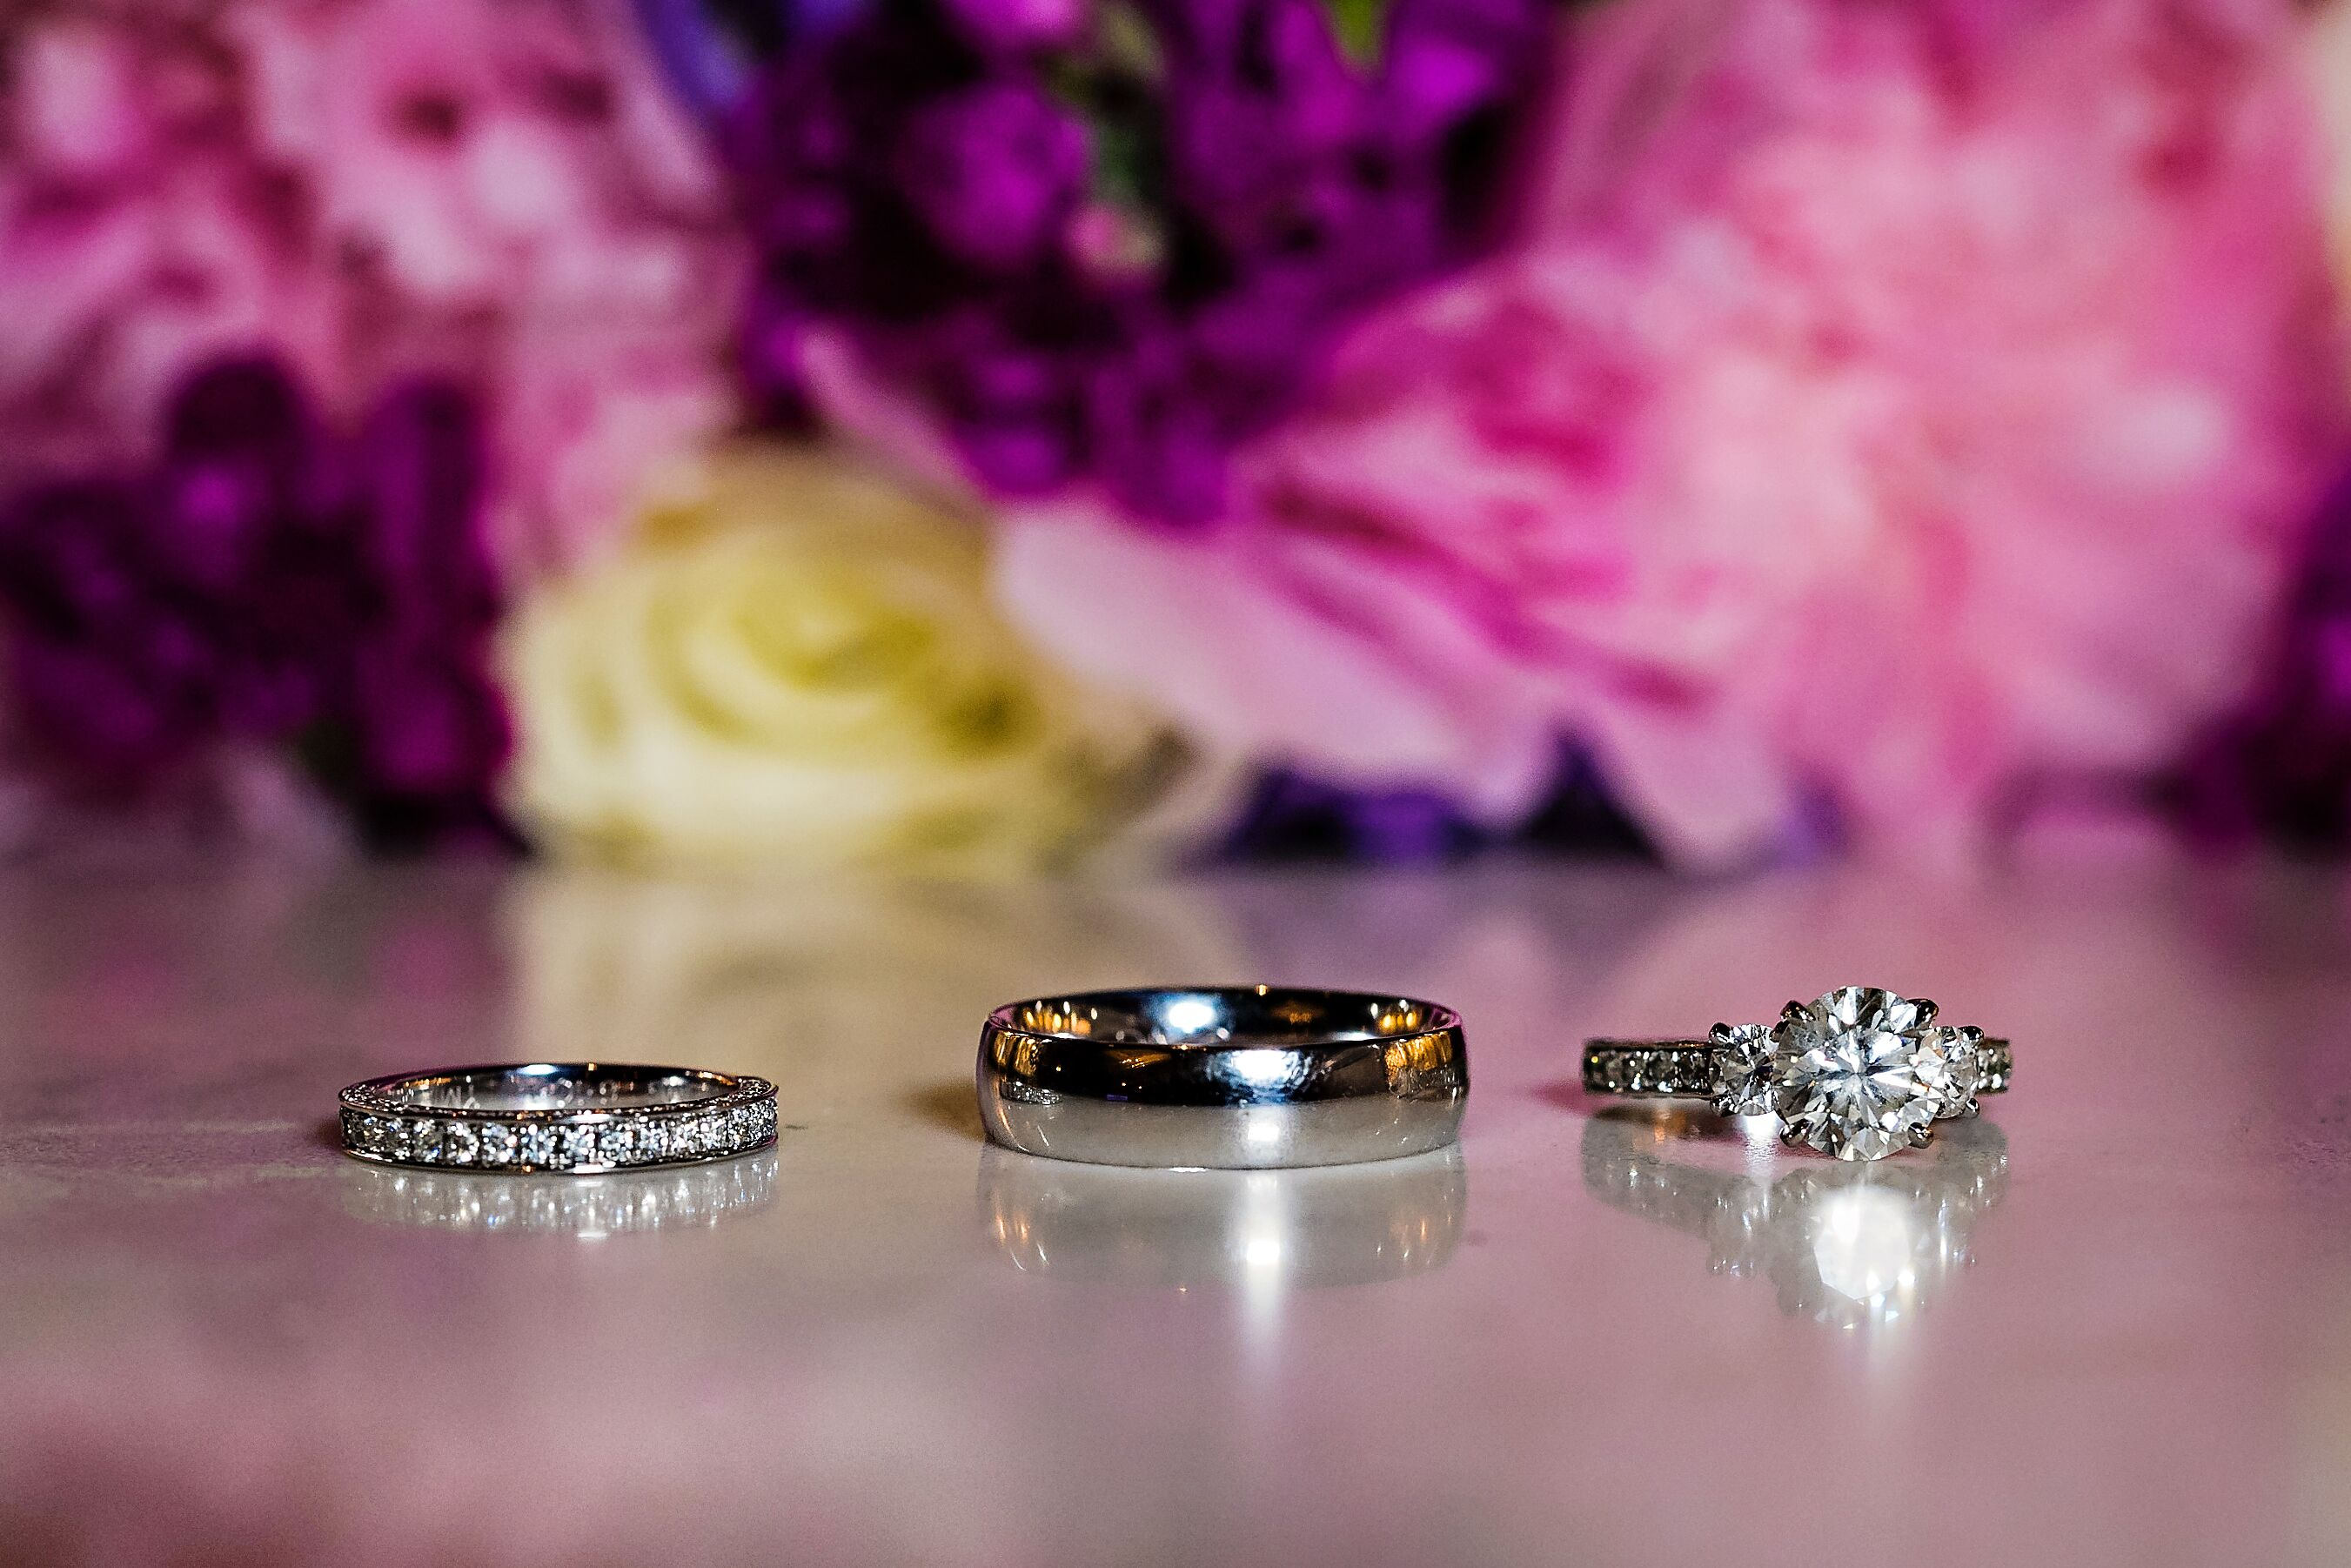 Wedding Photographers in New Orleans, LA - The Knot